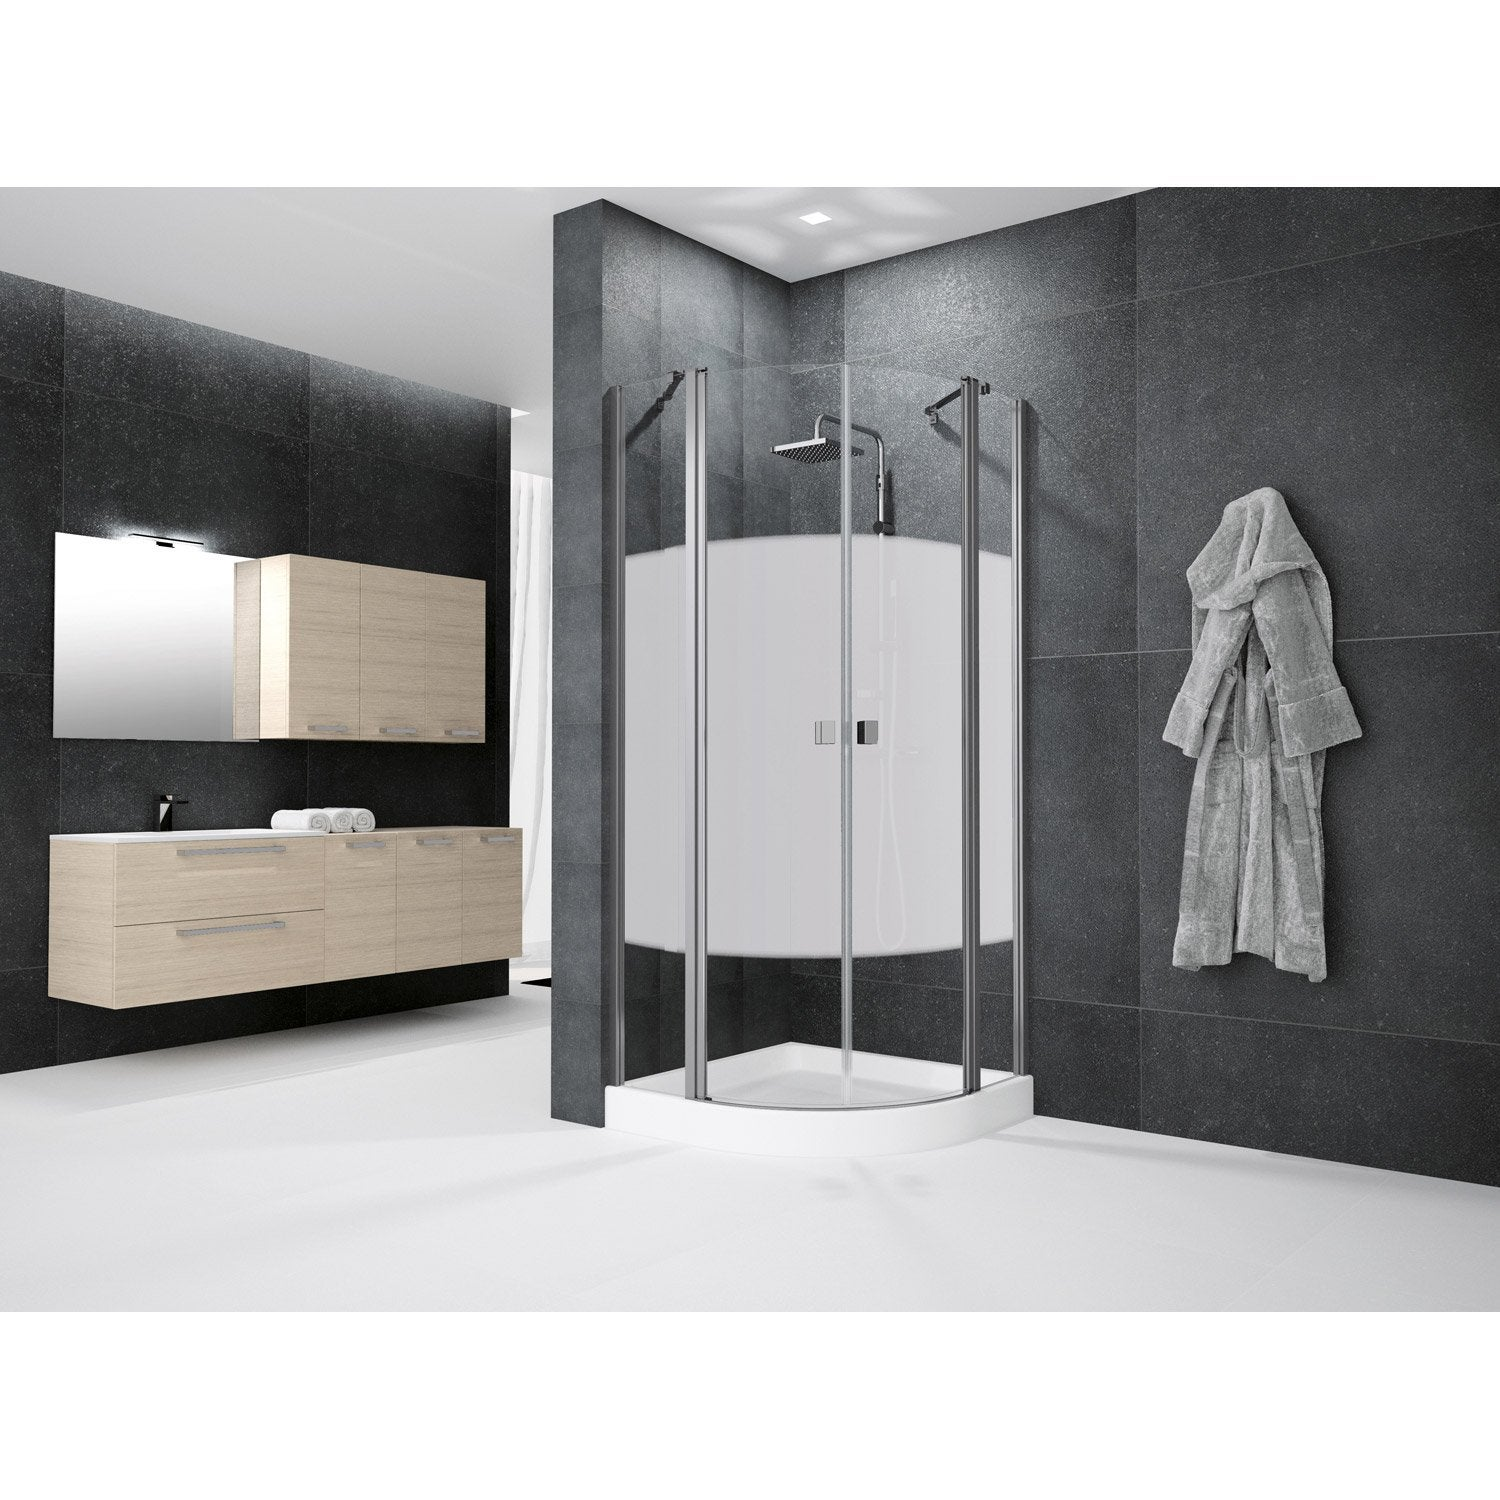 porte de douche battante angle 1 4 de cercle 80 x 80 cm s rigraphi neo leroy merlin. Black Bedroom Furniture Sets. Home Design Ideas